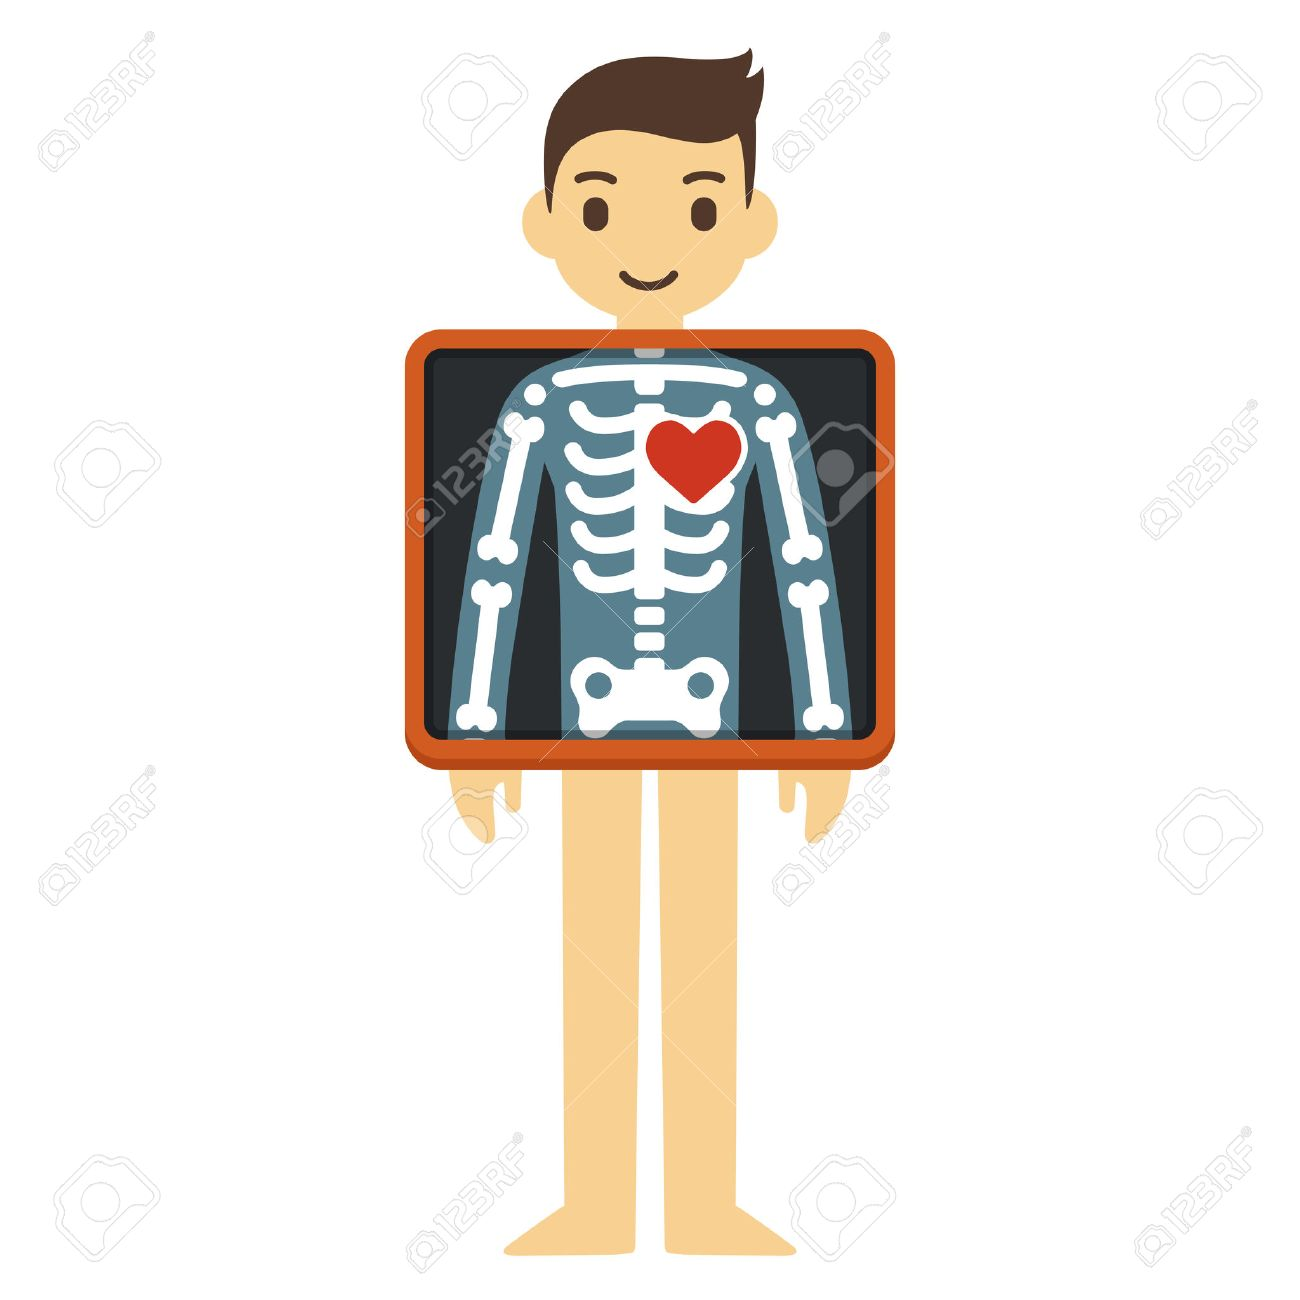 Cute Cartoon Adult Man With X Ray Screen Showing His Skeleton Royalty Free Cliparts Vectors And Stock Illustration Image 43127820